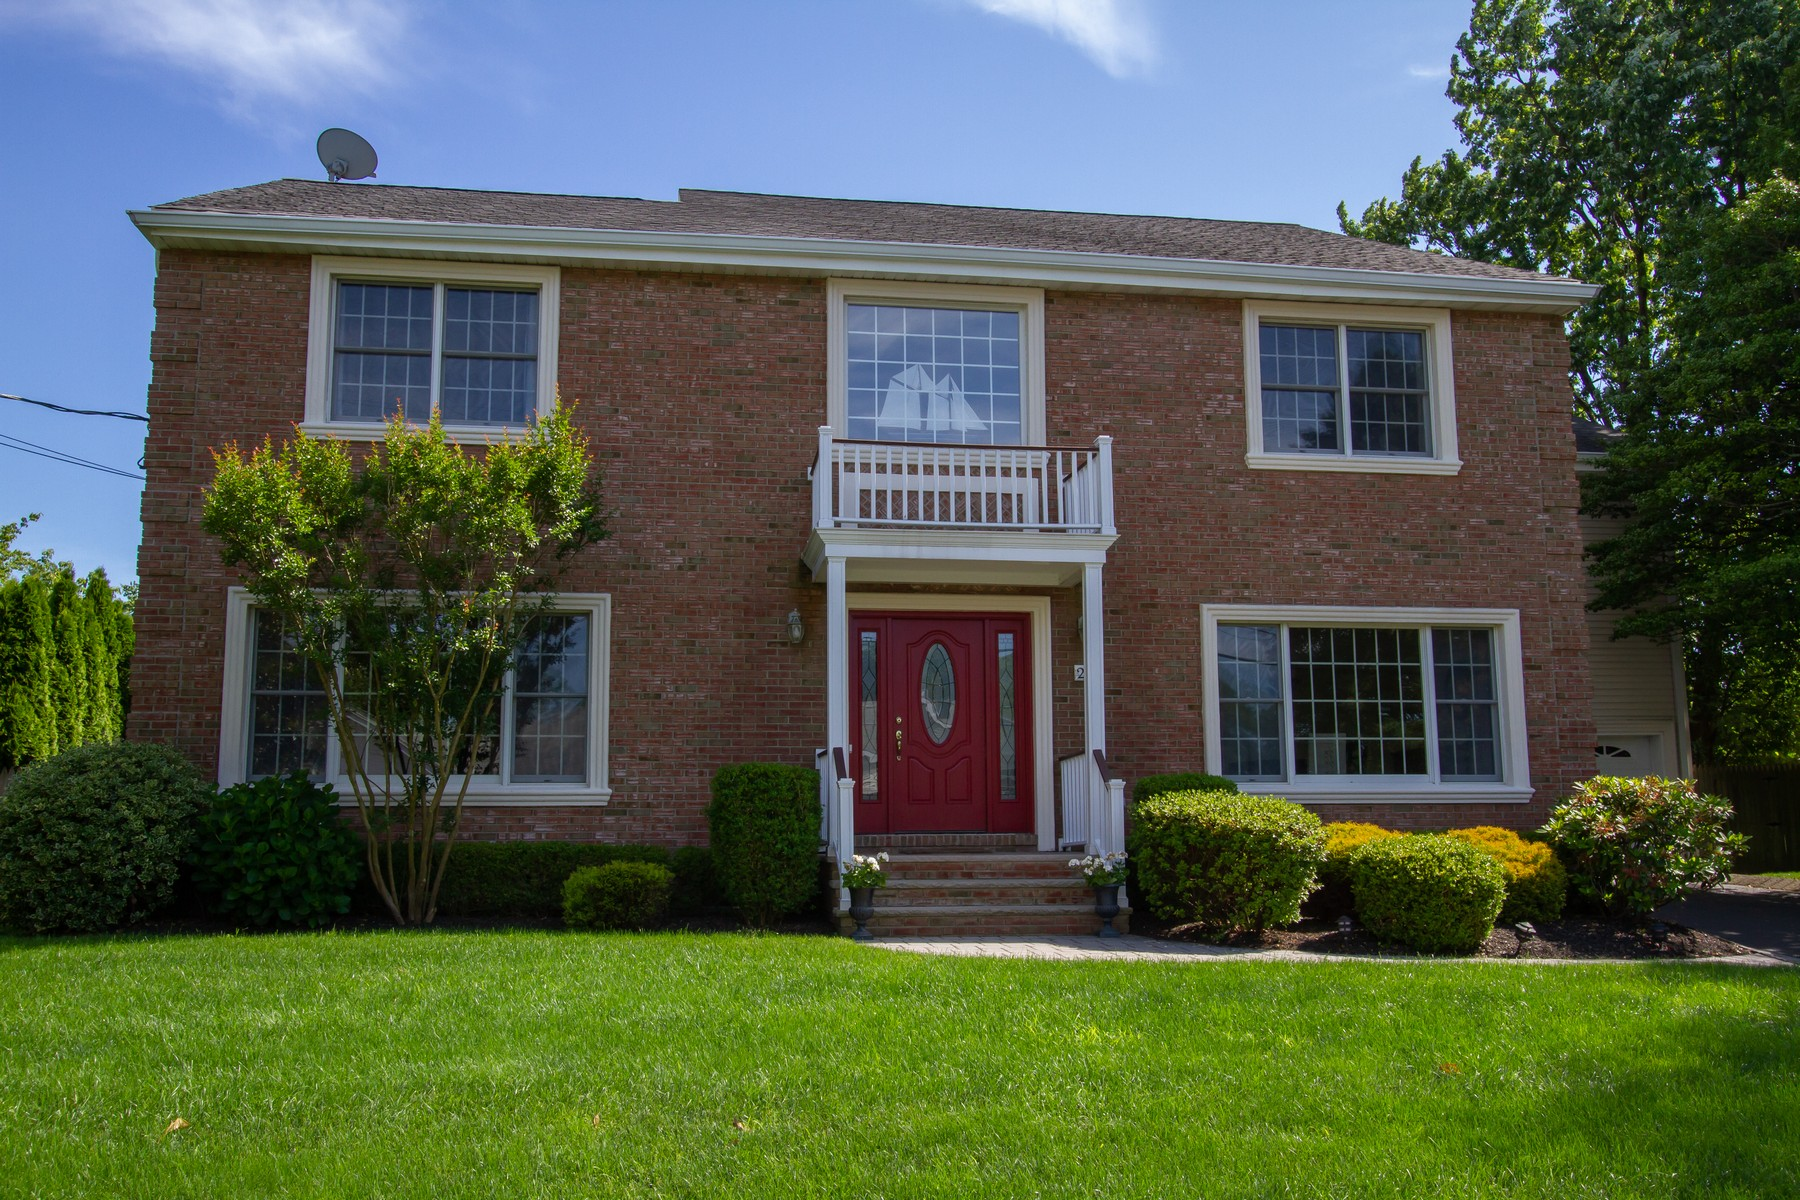 Single Family Homes for Active at Oceanport, NJ 20 Algonquin Avenue Oceanport, New Jersey 07757 United States